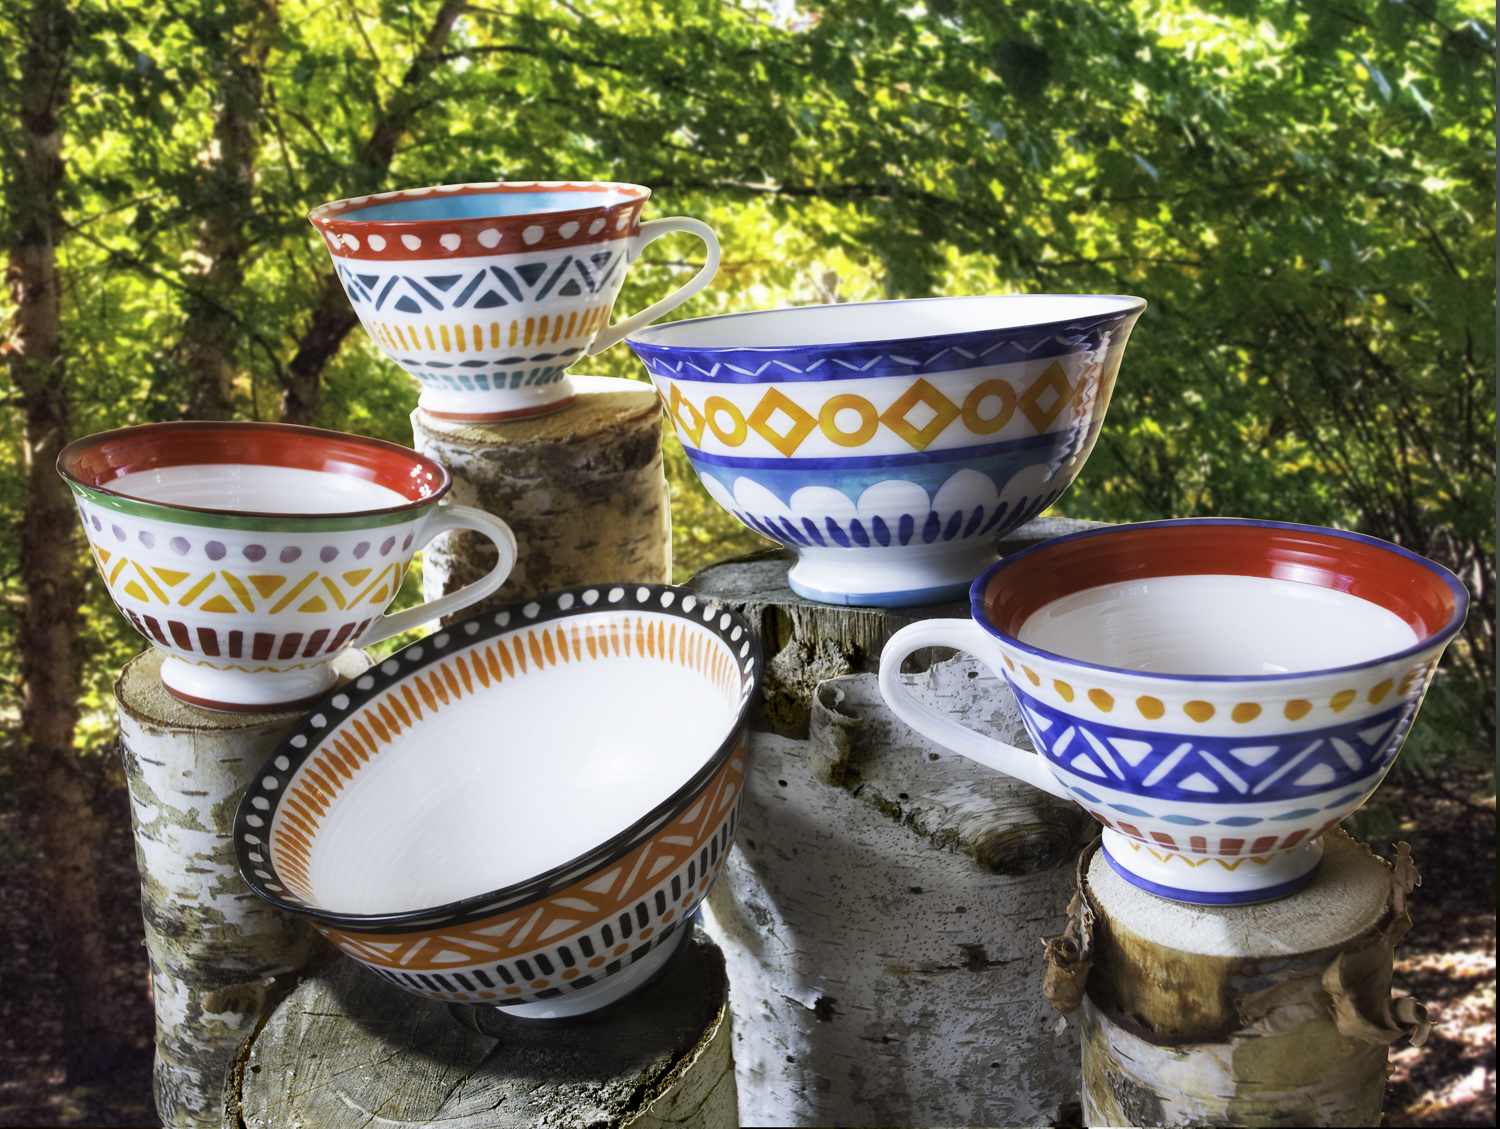 Bowls and Mugs for Advertising